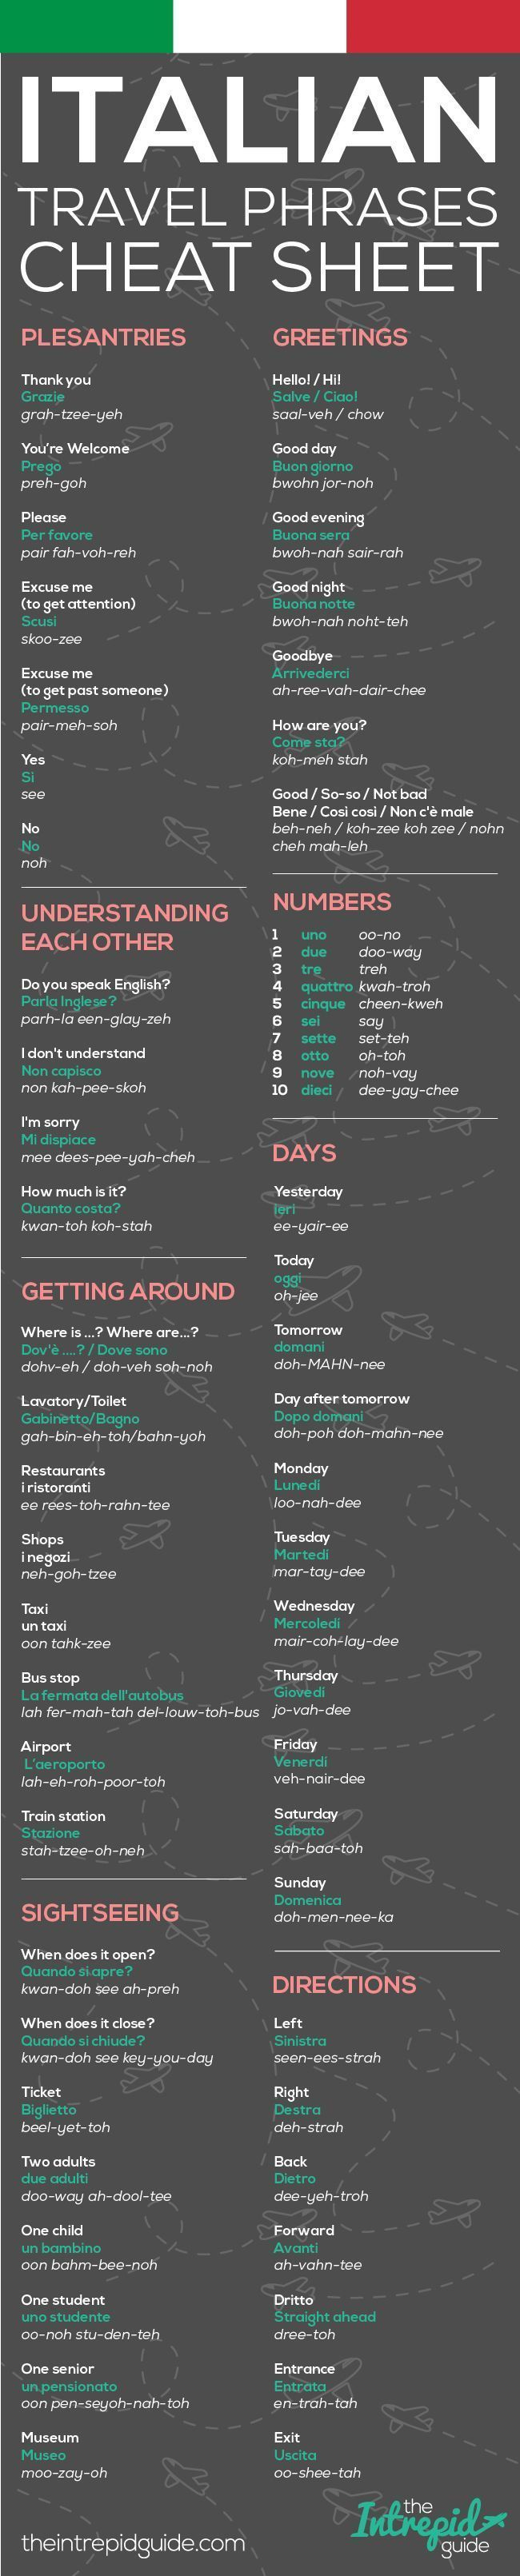 Italian Travel Phrases Cheat Sheet - Whether you're take a trip to Italy or just basking in the culture, add these Italian phrases to your language arsenal. Anything related to restaurants or directions to the nearest vineyard for wine is a must. #CultureHoliday